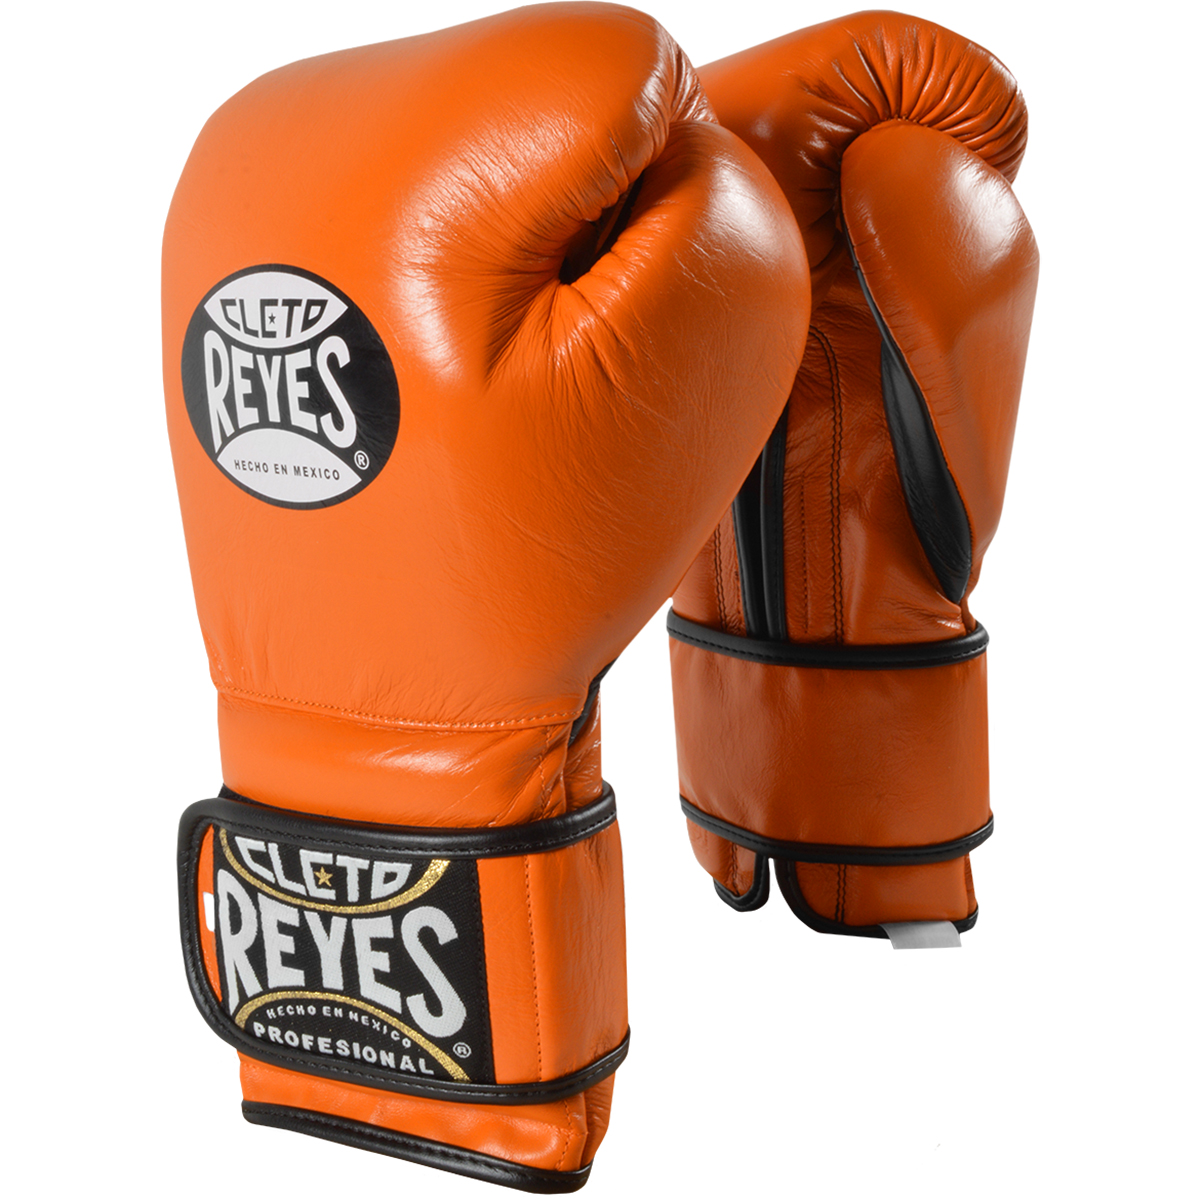 Details about Cleto Reyes Hook and Loop Leather Training Boxing Gloves -  Tiger Orange